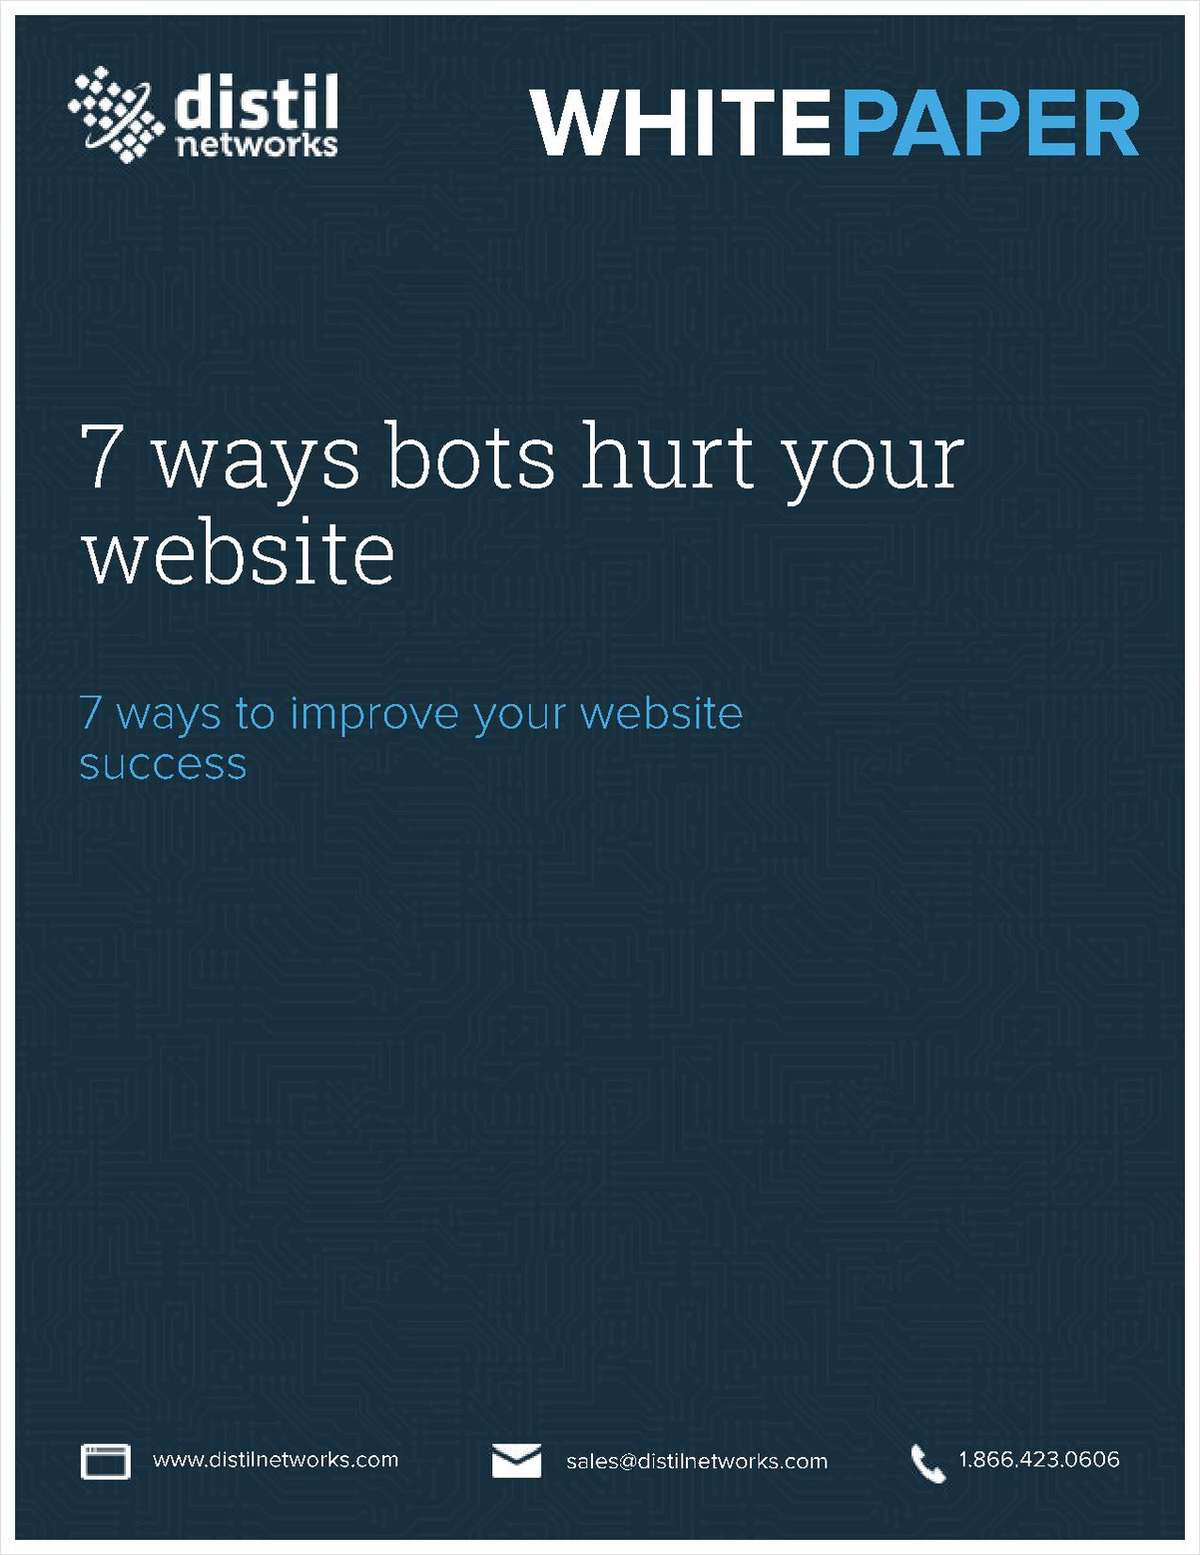 7 Ways Bots Hurt Your Website